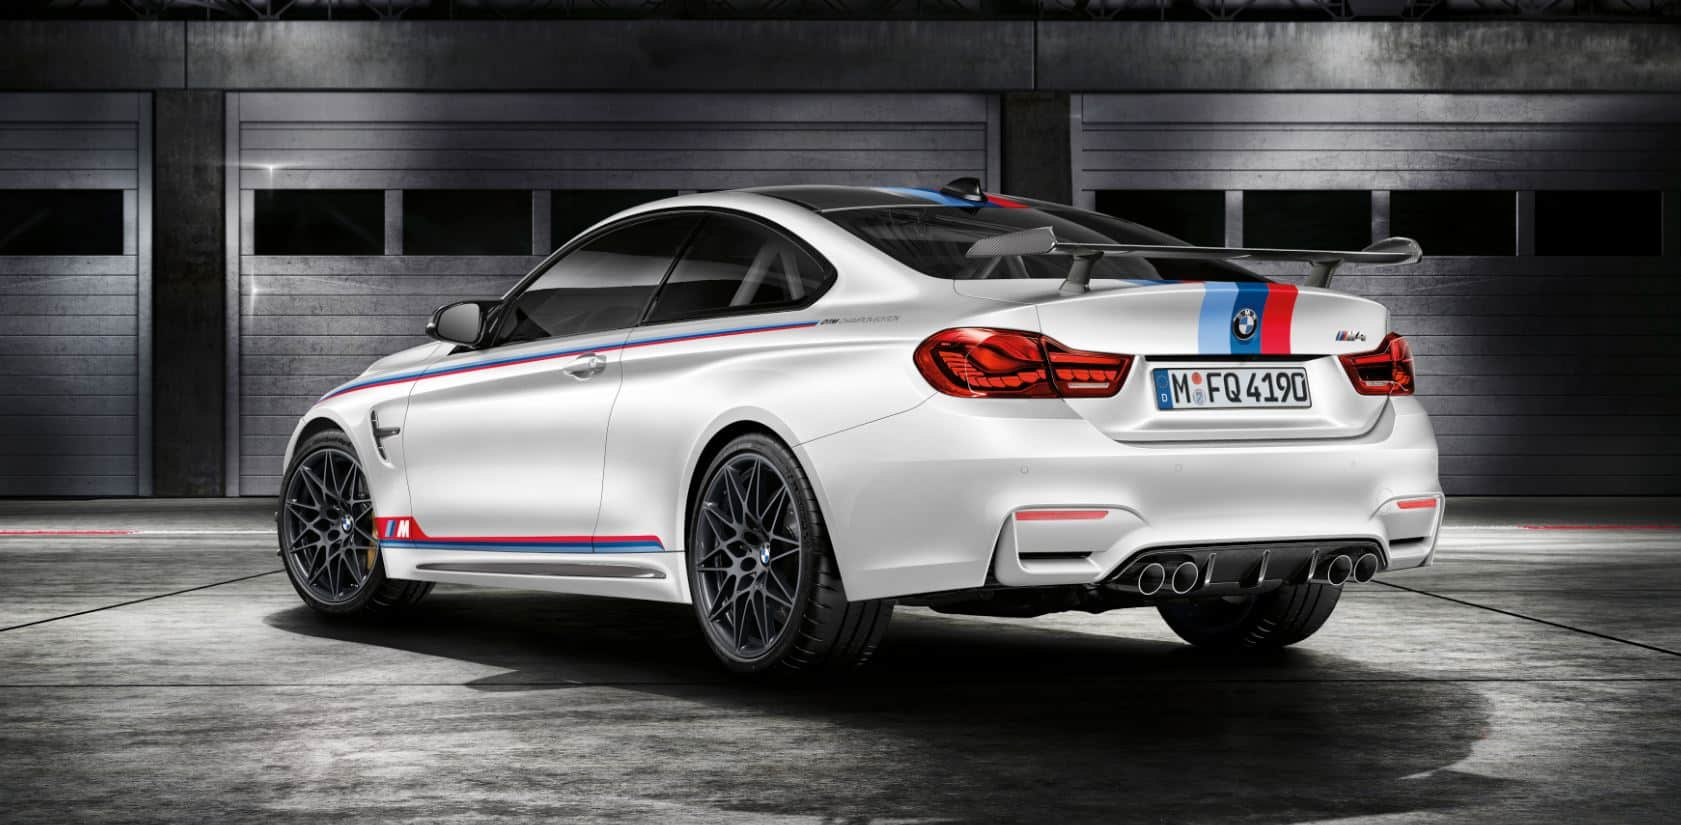 bmw-m4-dtm-champion-edition-2016